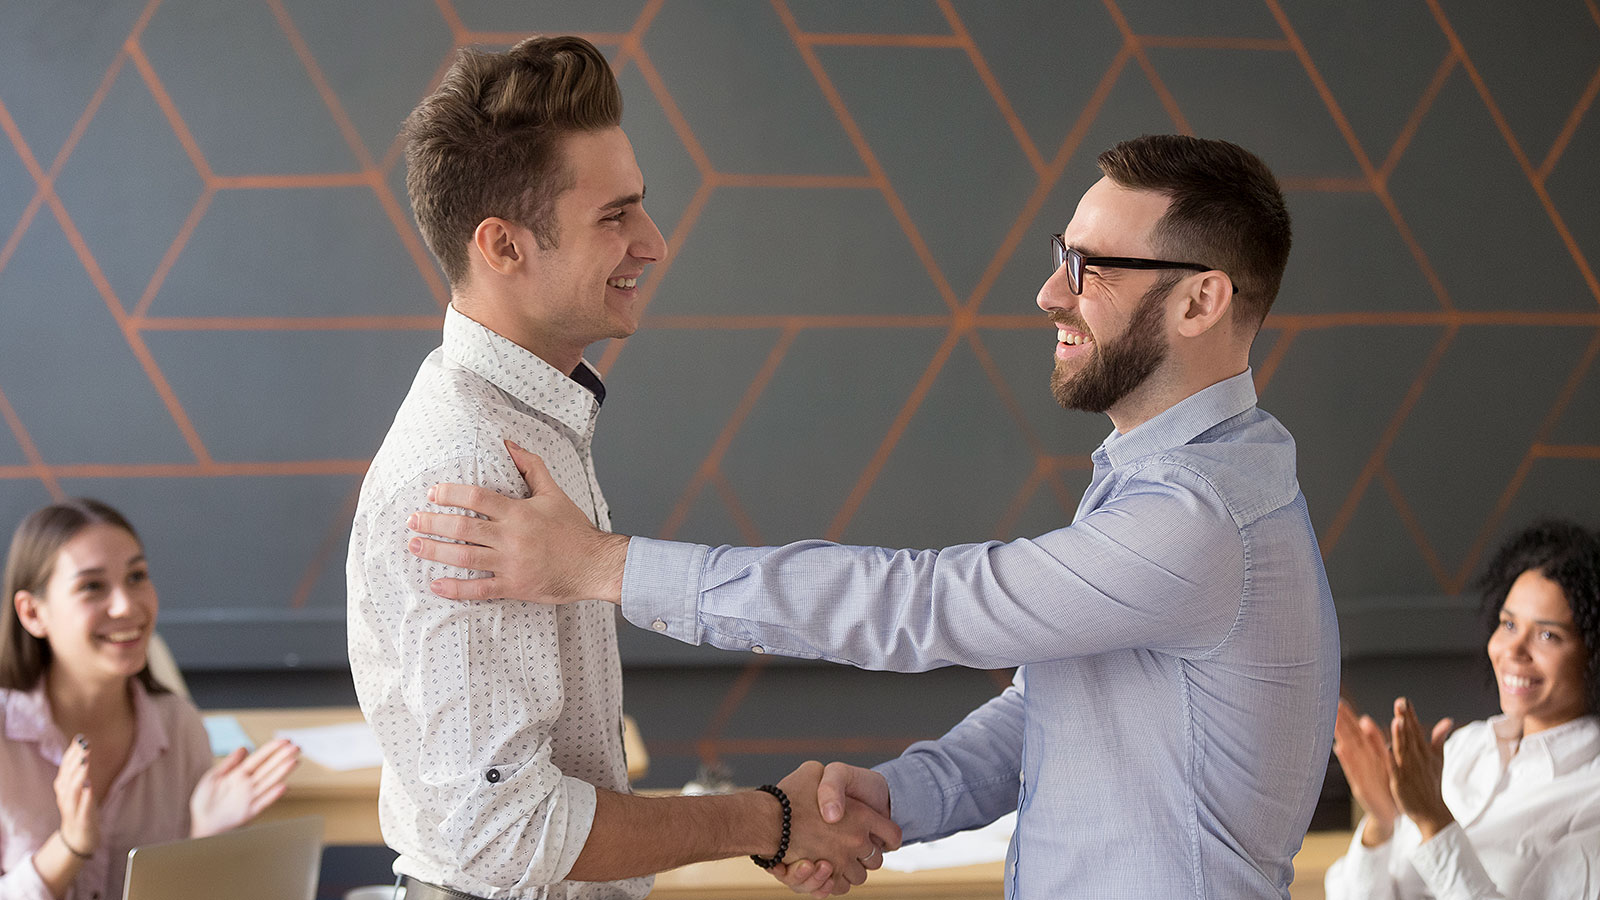 5 signs your boss doesn't like you as much as you think